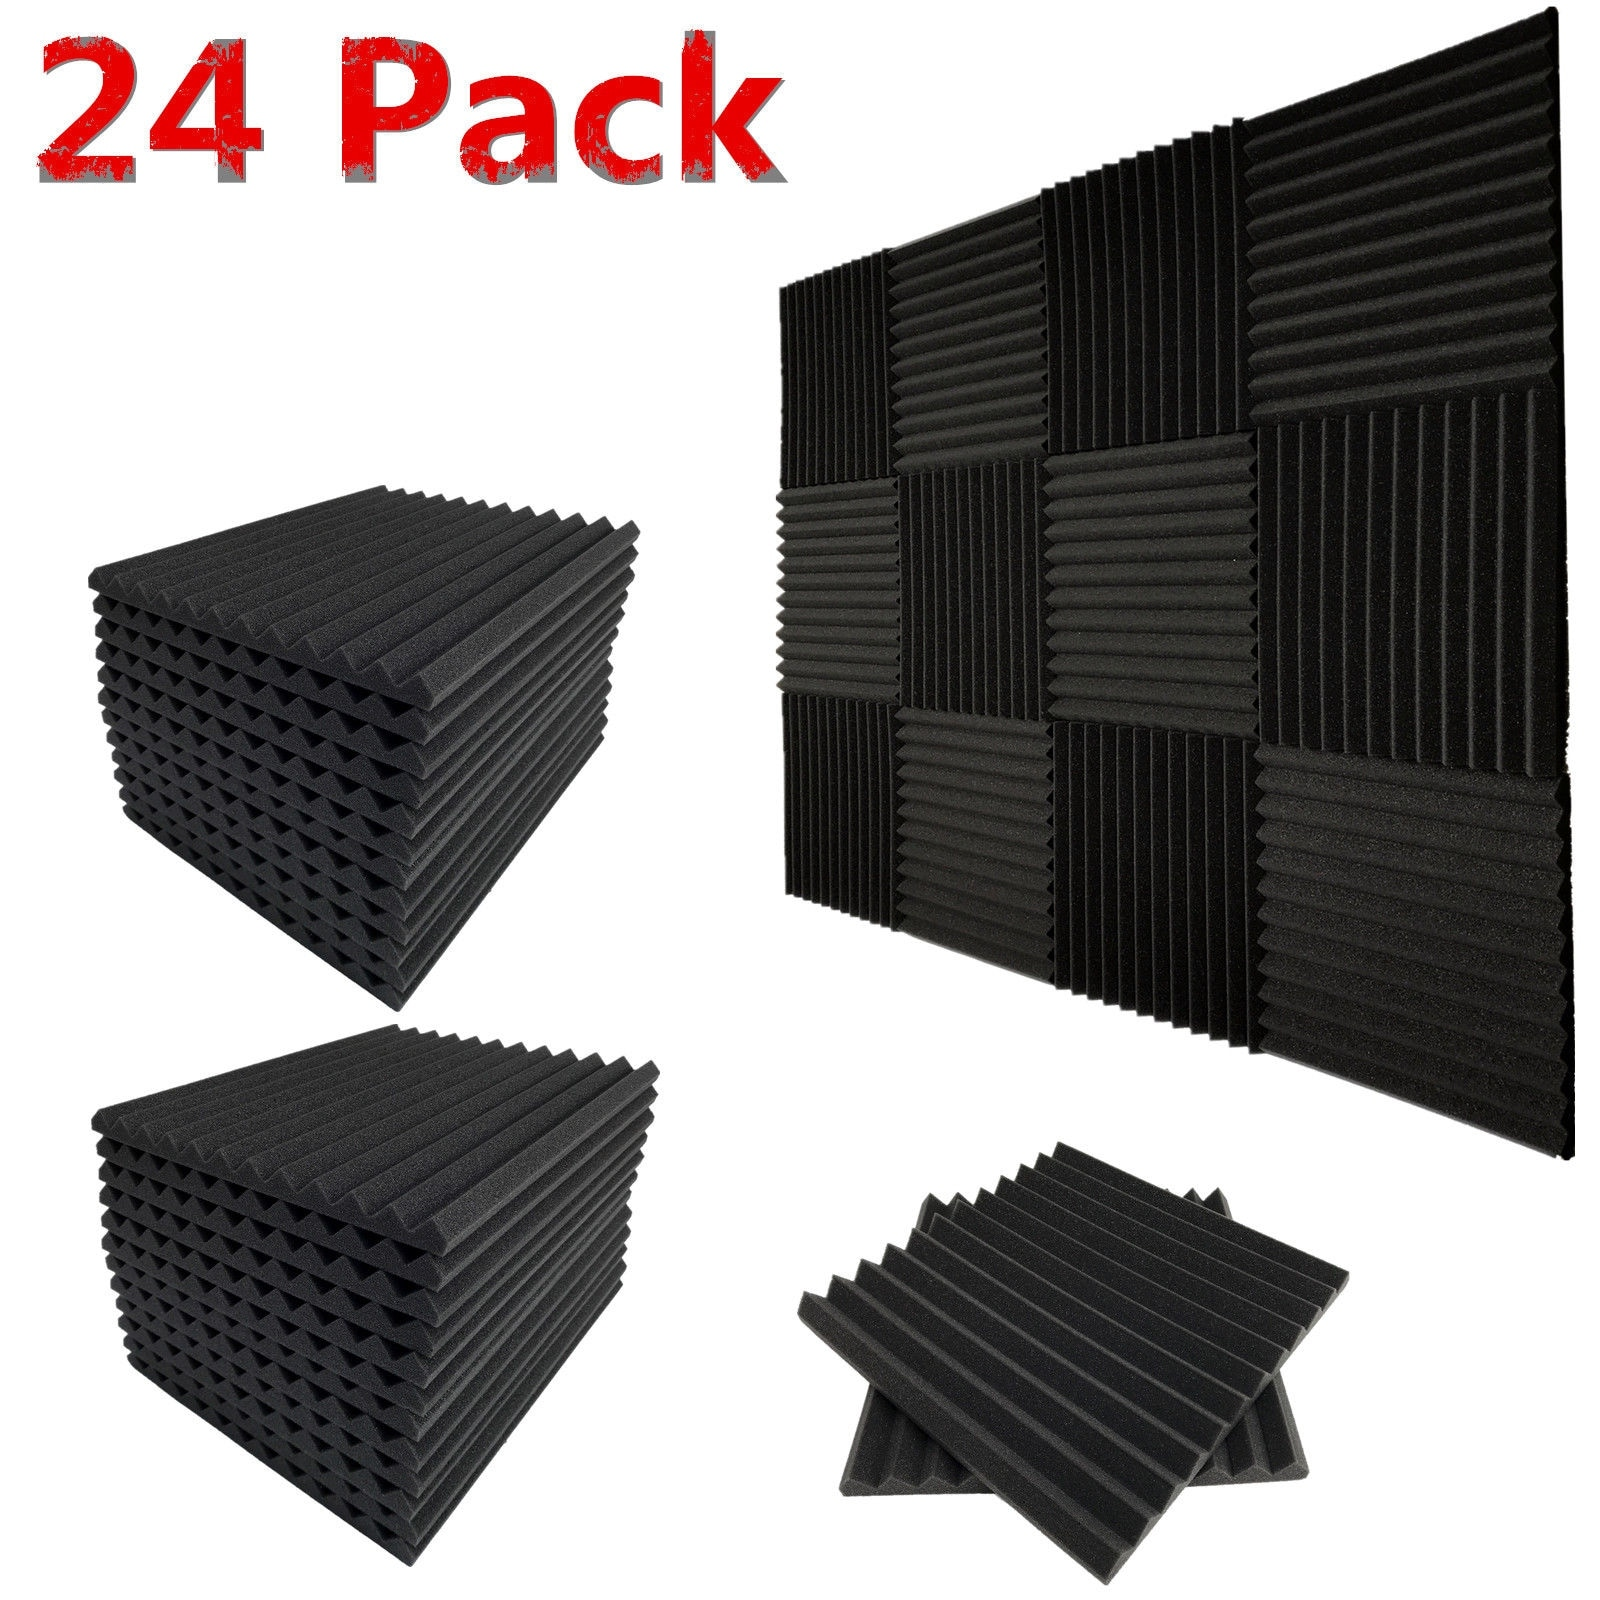 Acoustic Panels 12 Pack Studio Wedge Tiles Sound Panels wedges Soundproof Sound Insulation Absorbing 2 X 12 X 12 Acoustic Foam Panels